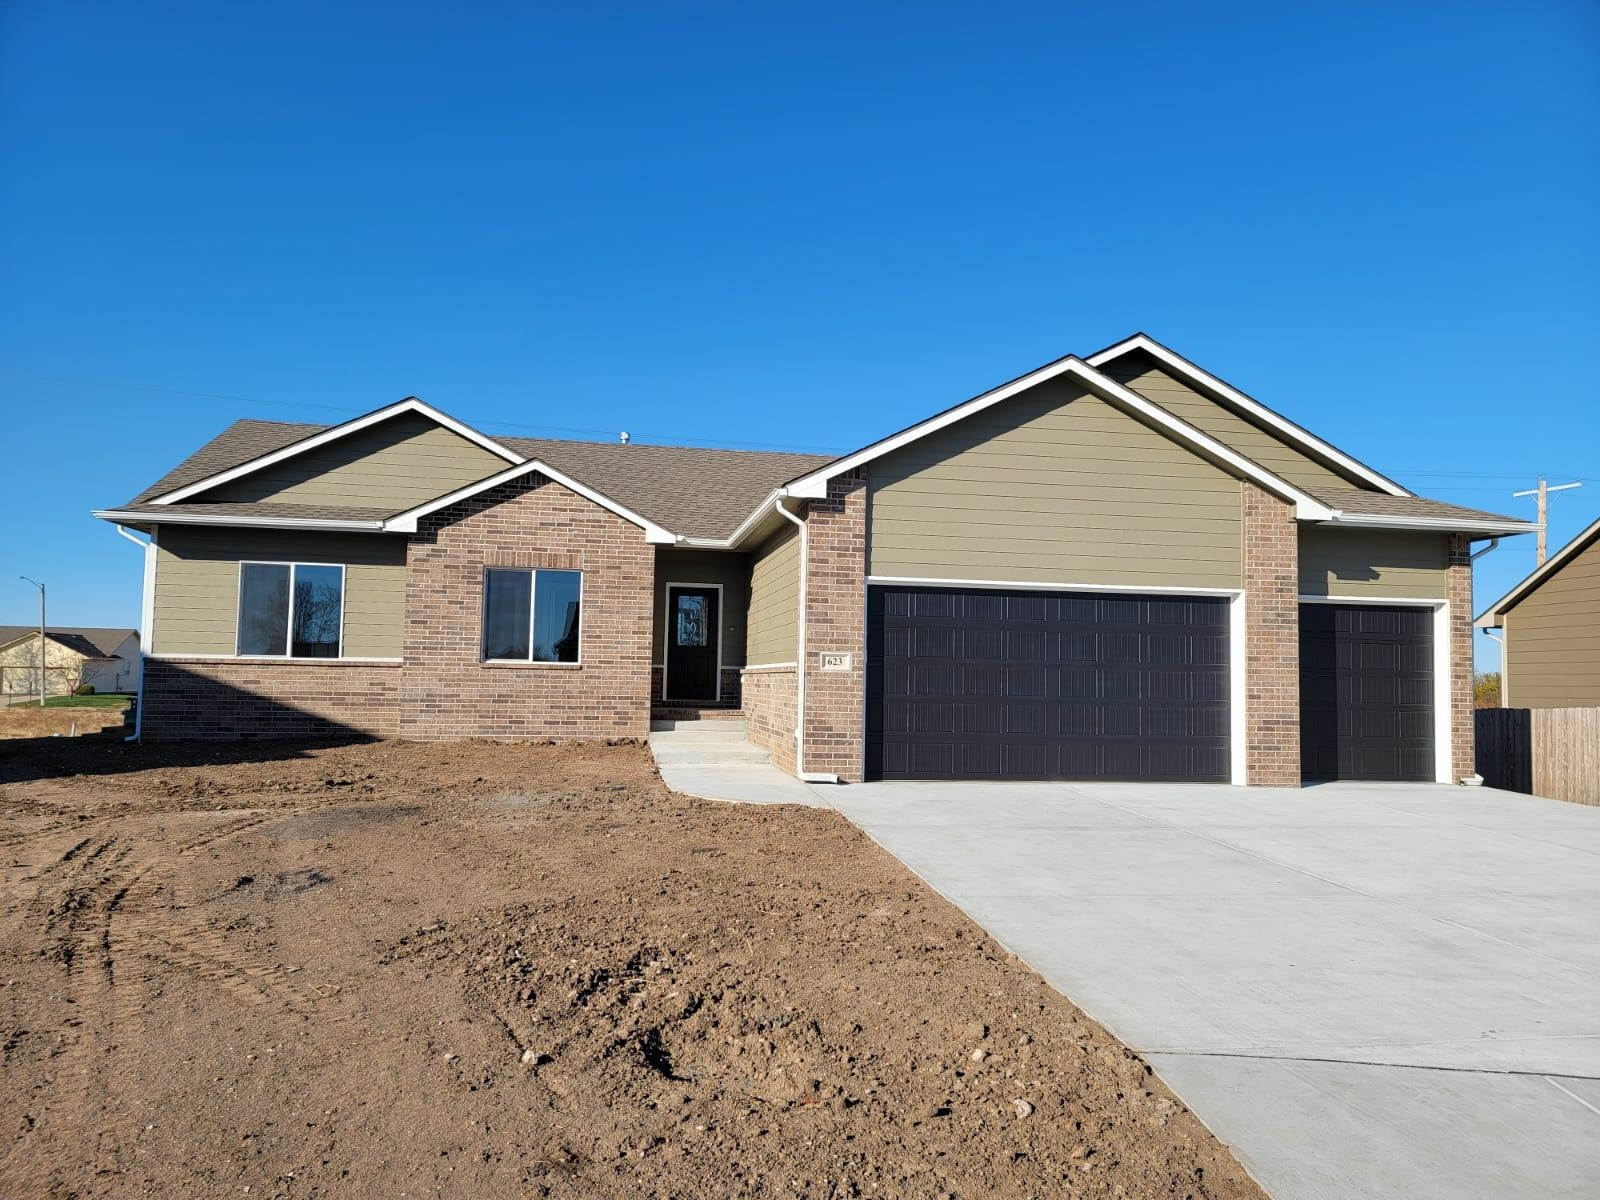 Brand new home with great open floor plan, 5 bedrooms 3 bathrooms 3 car garage with full finished vi